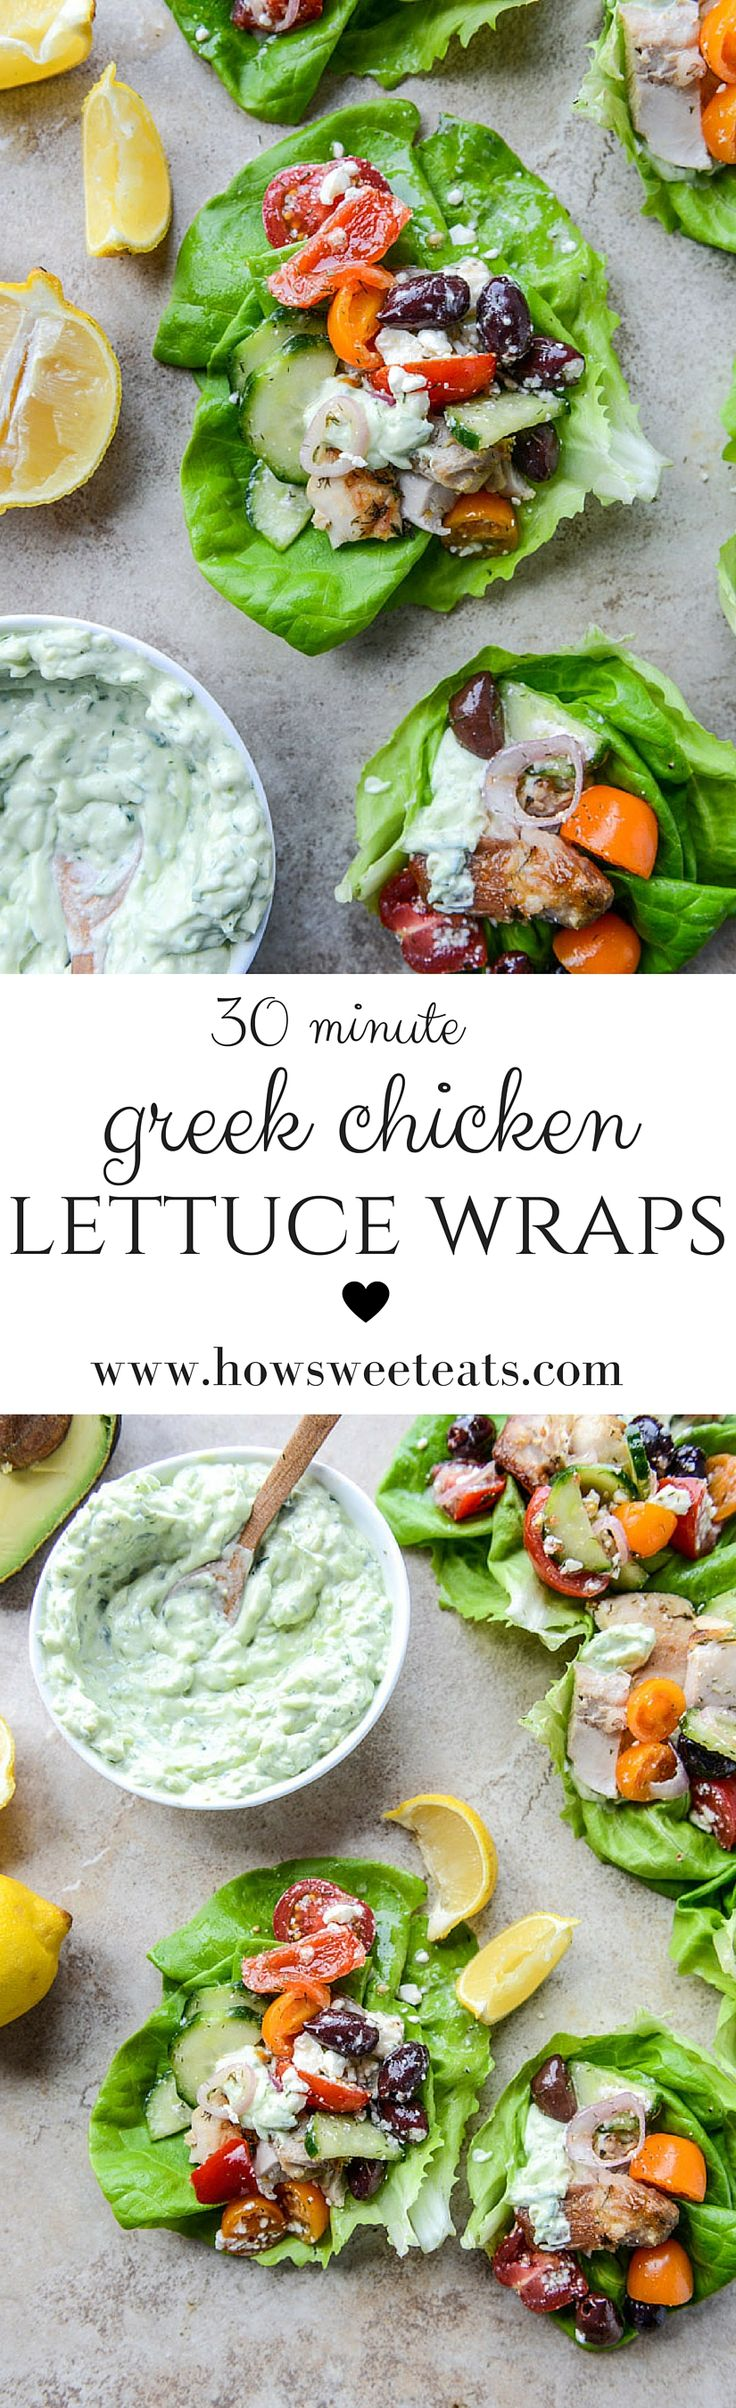 30 minutes greek chicken lettuce wraps with avocado tzatziki by @howsweeteats I howsweeteats.com